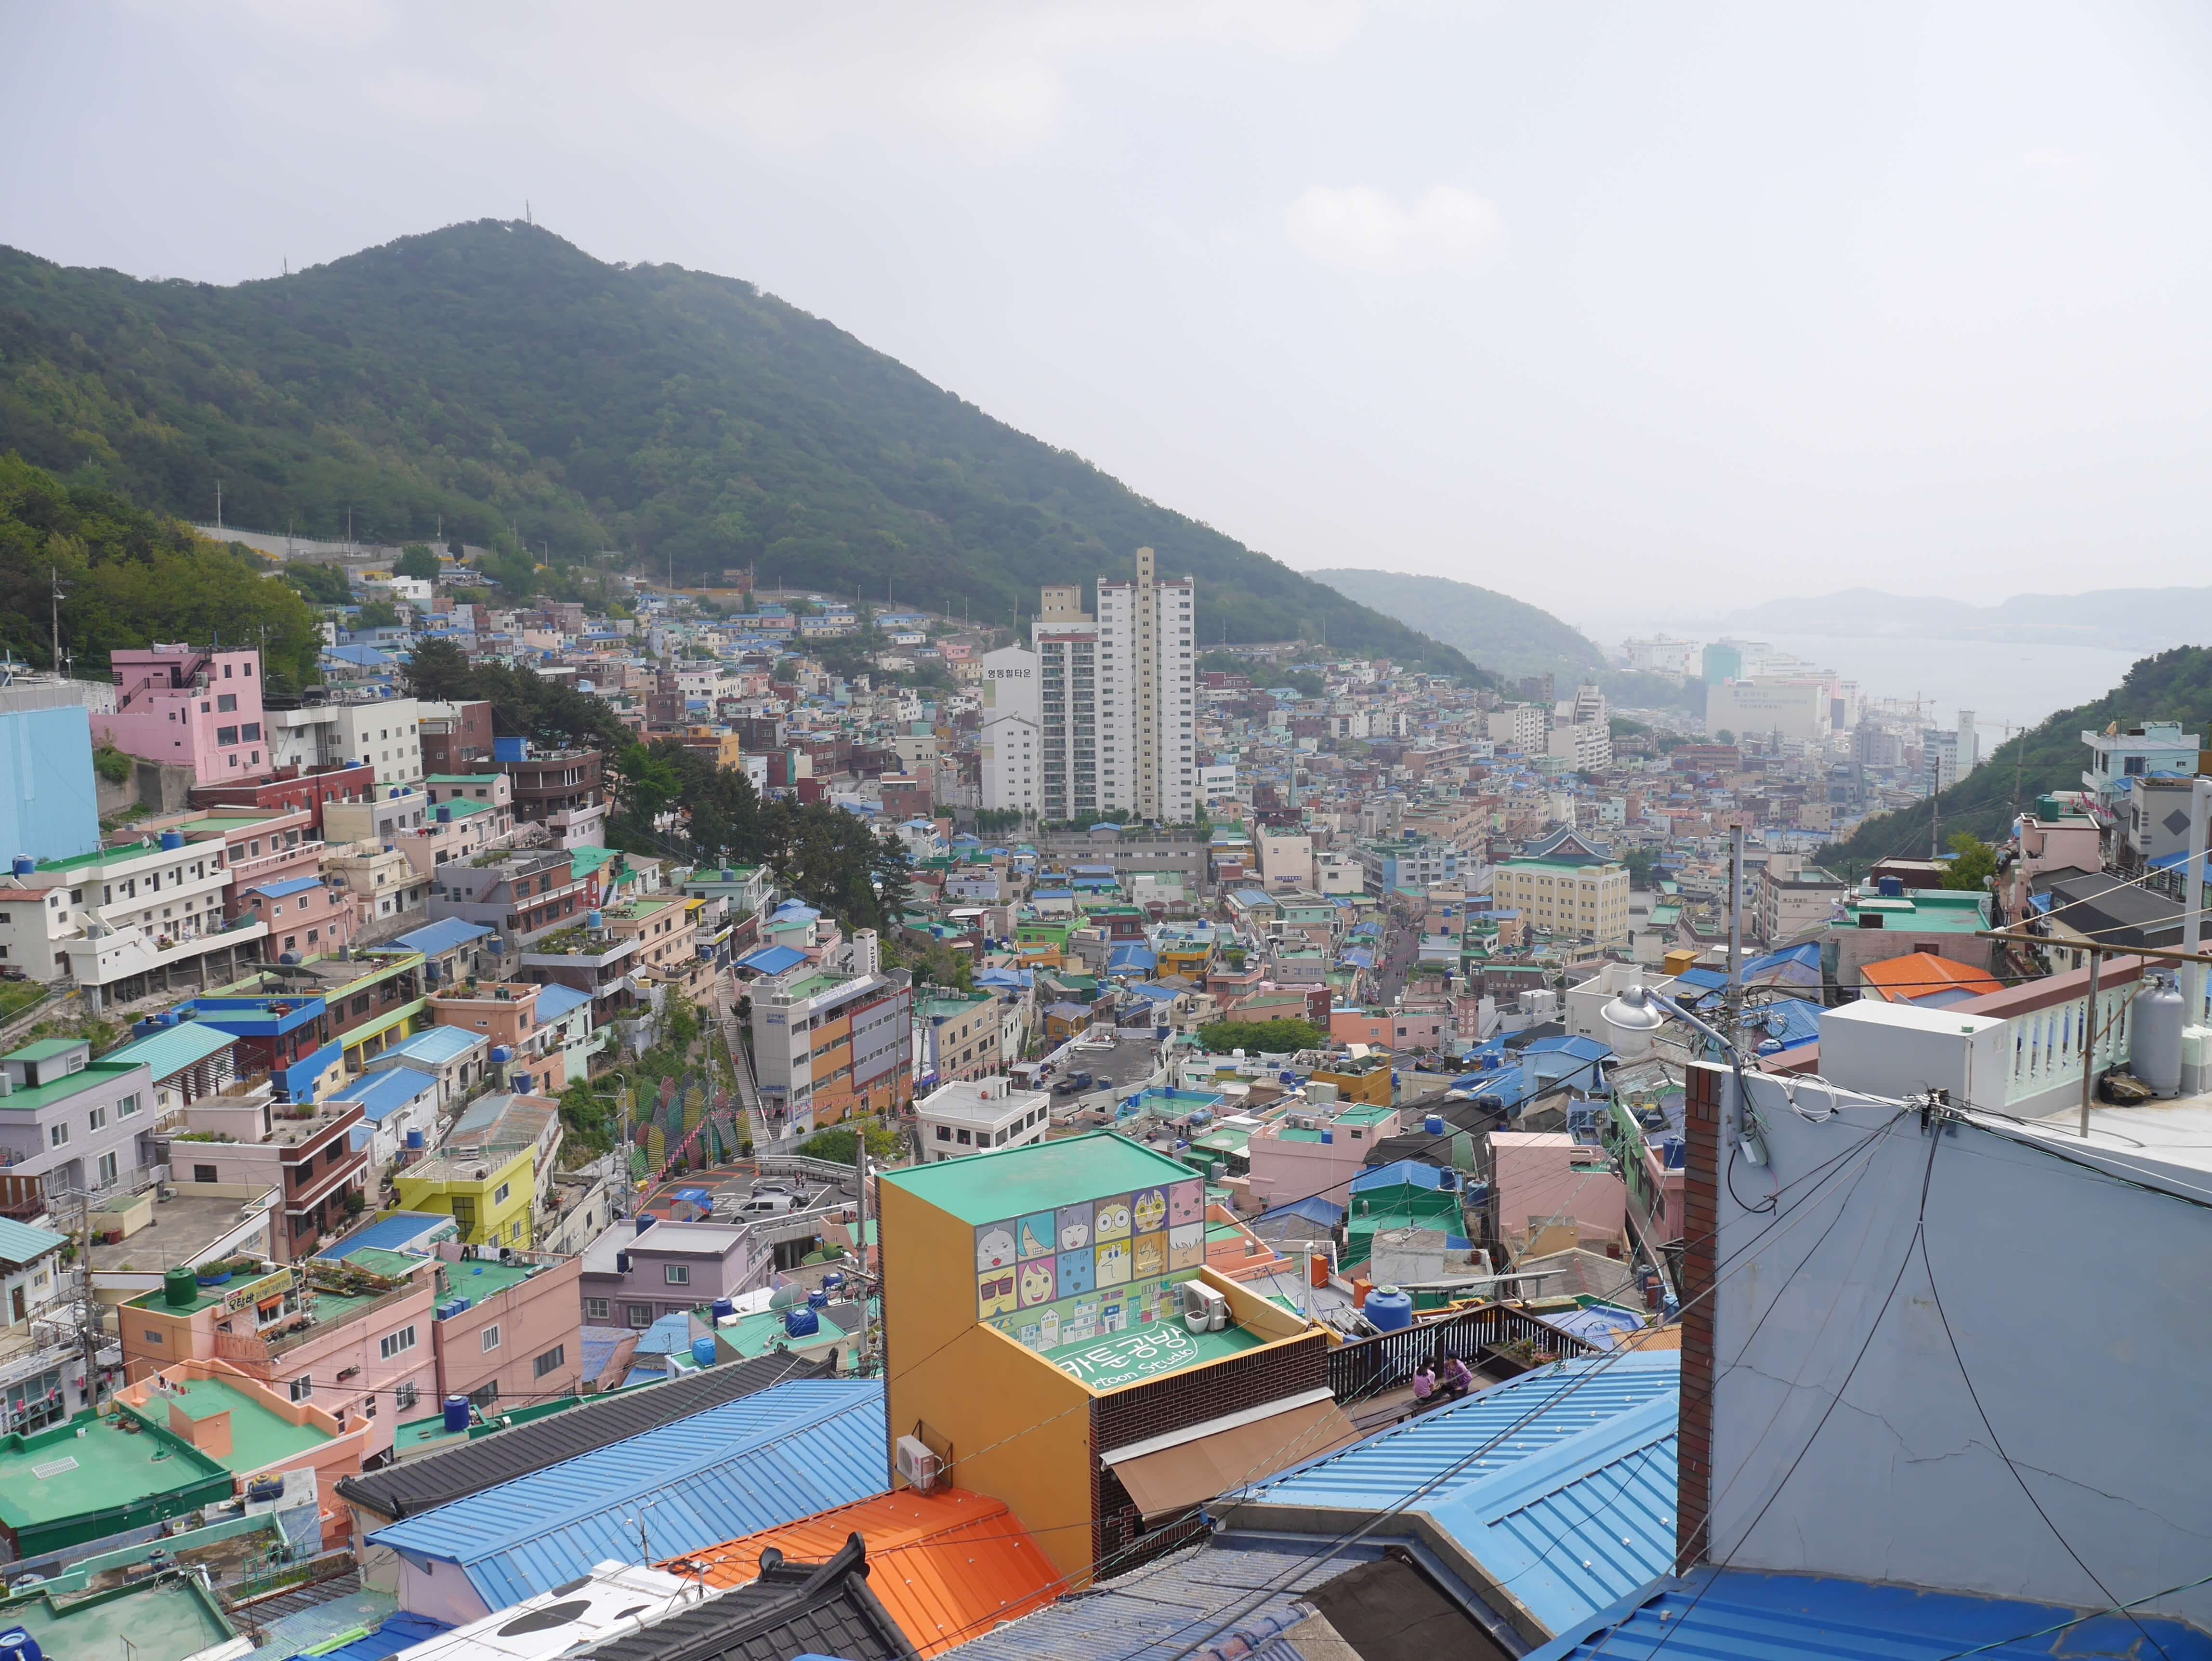 Gamcheon-Busan-Korea-buildings-colourful